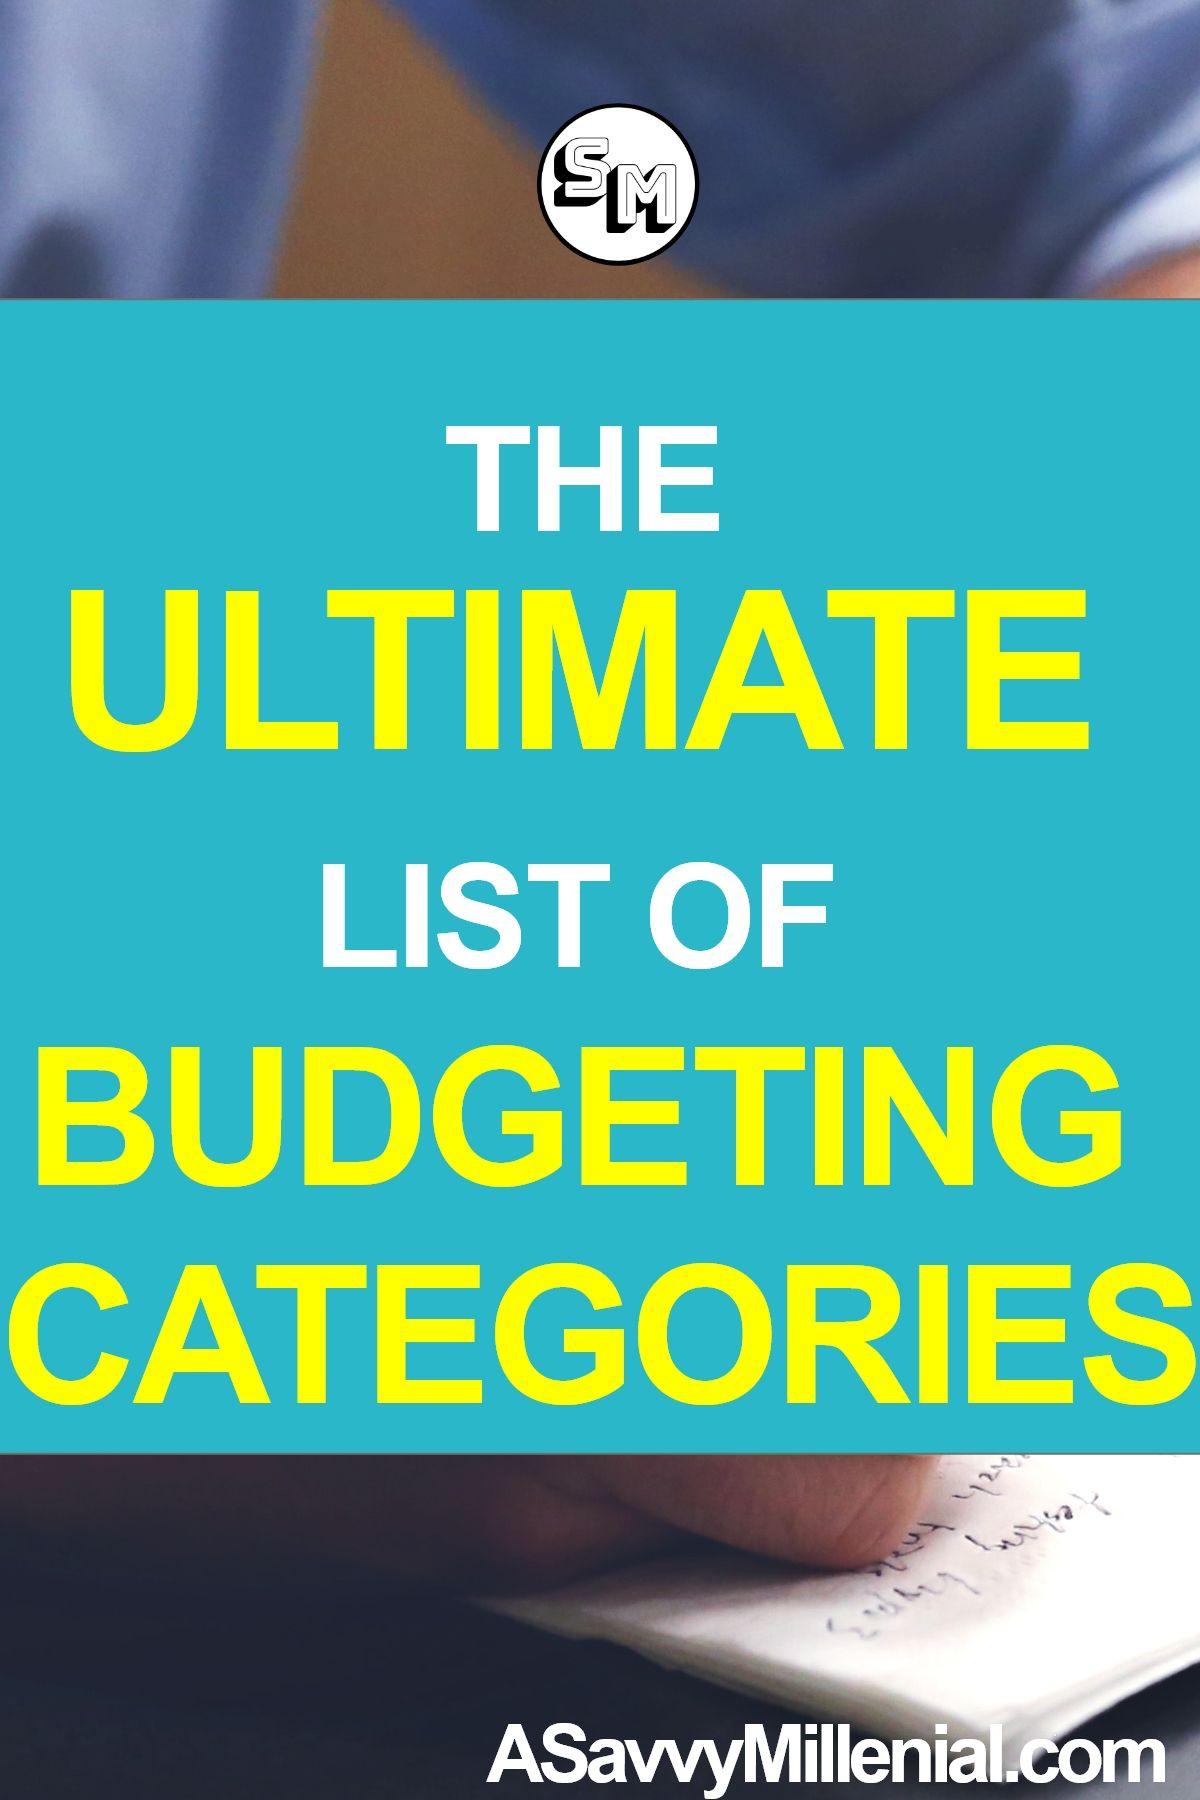 The Ultimate List Of Budgeting Categories